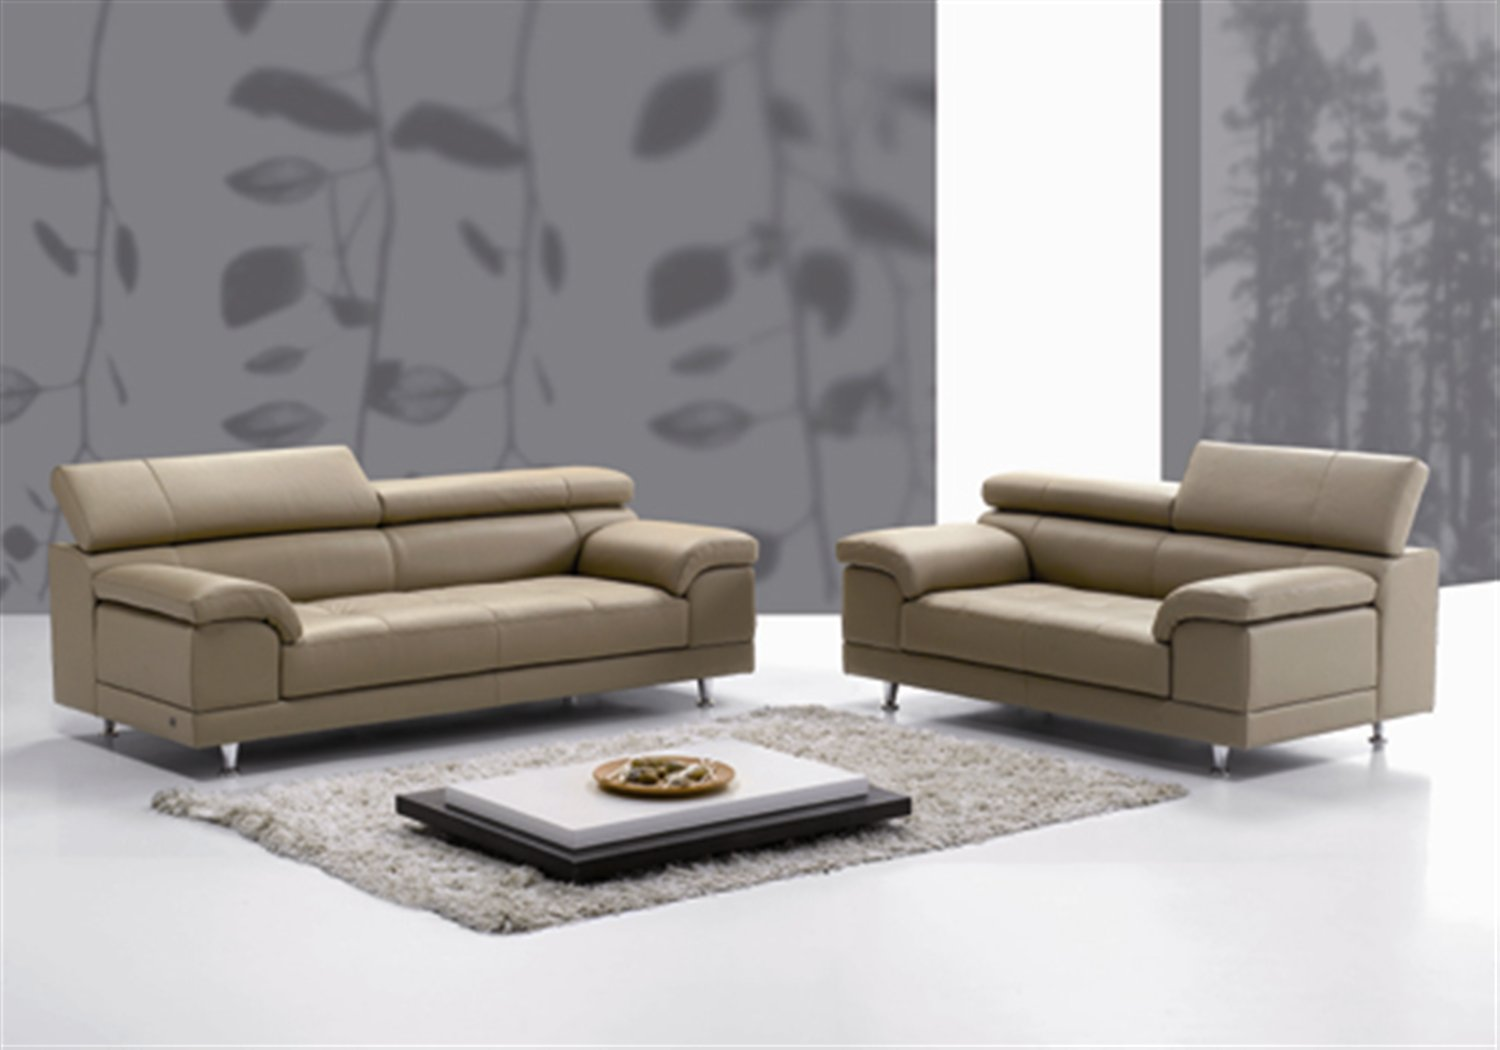 Italian leather sofa affordable and quality from piquattro for Leather furniture